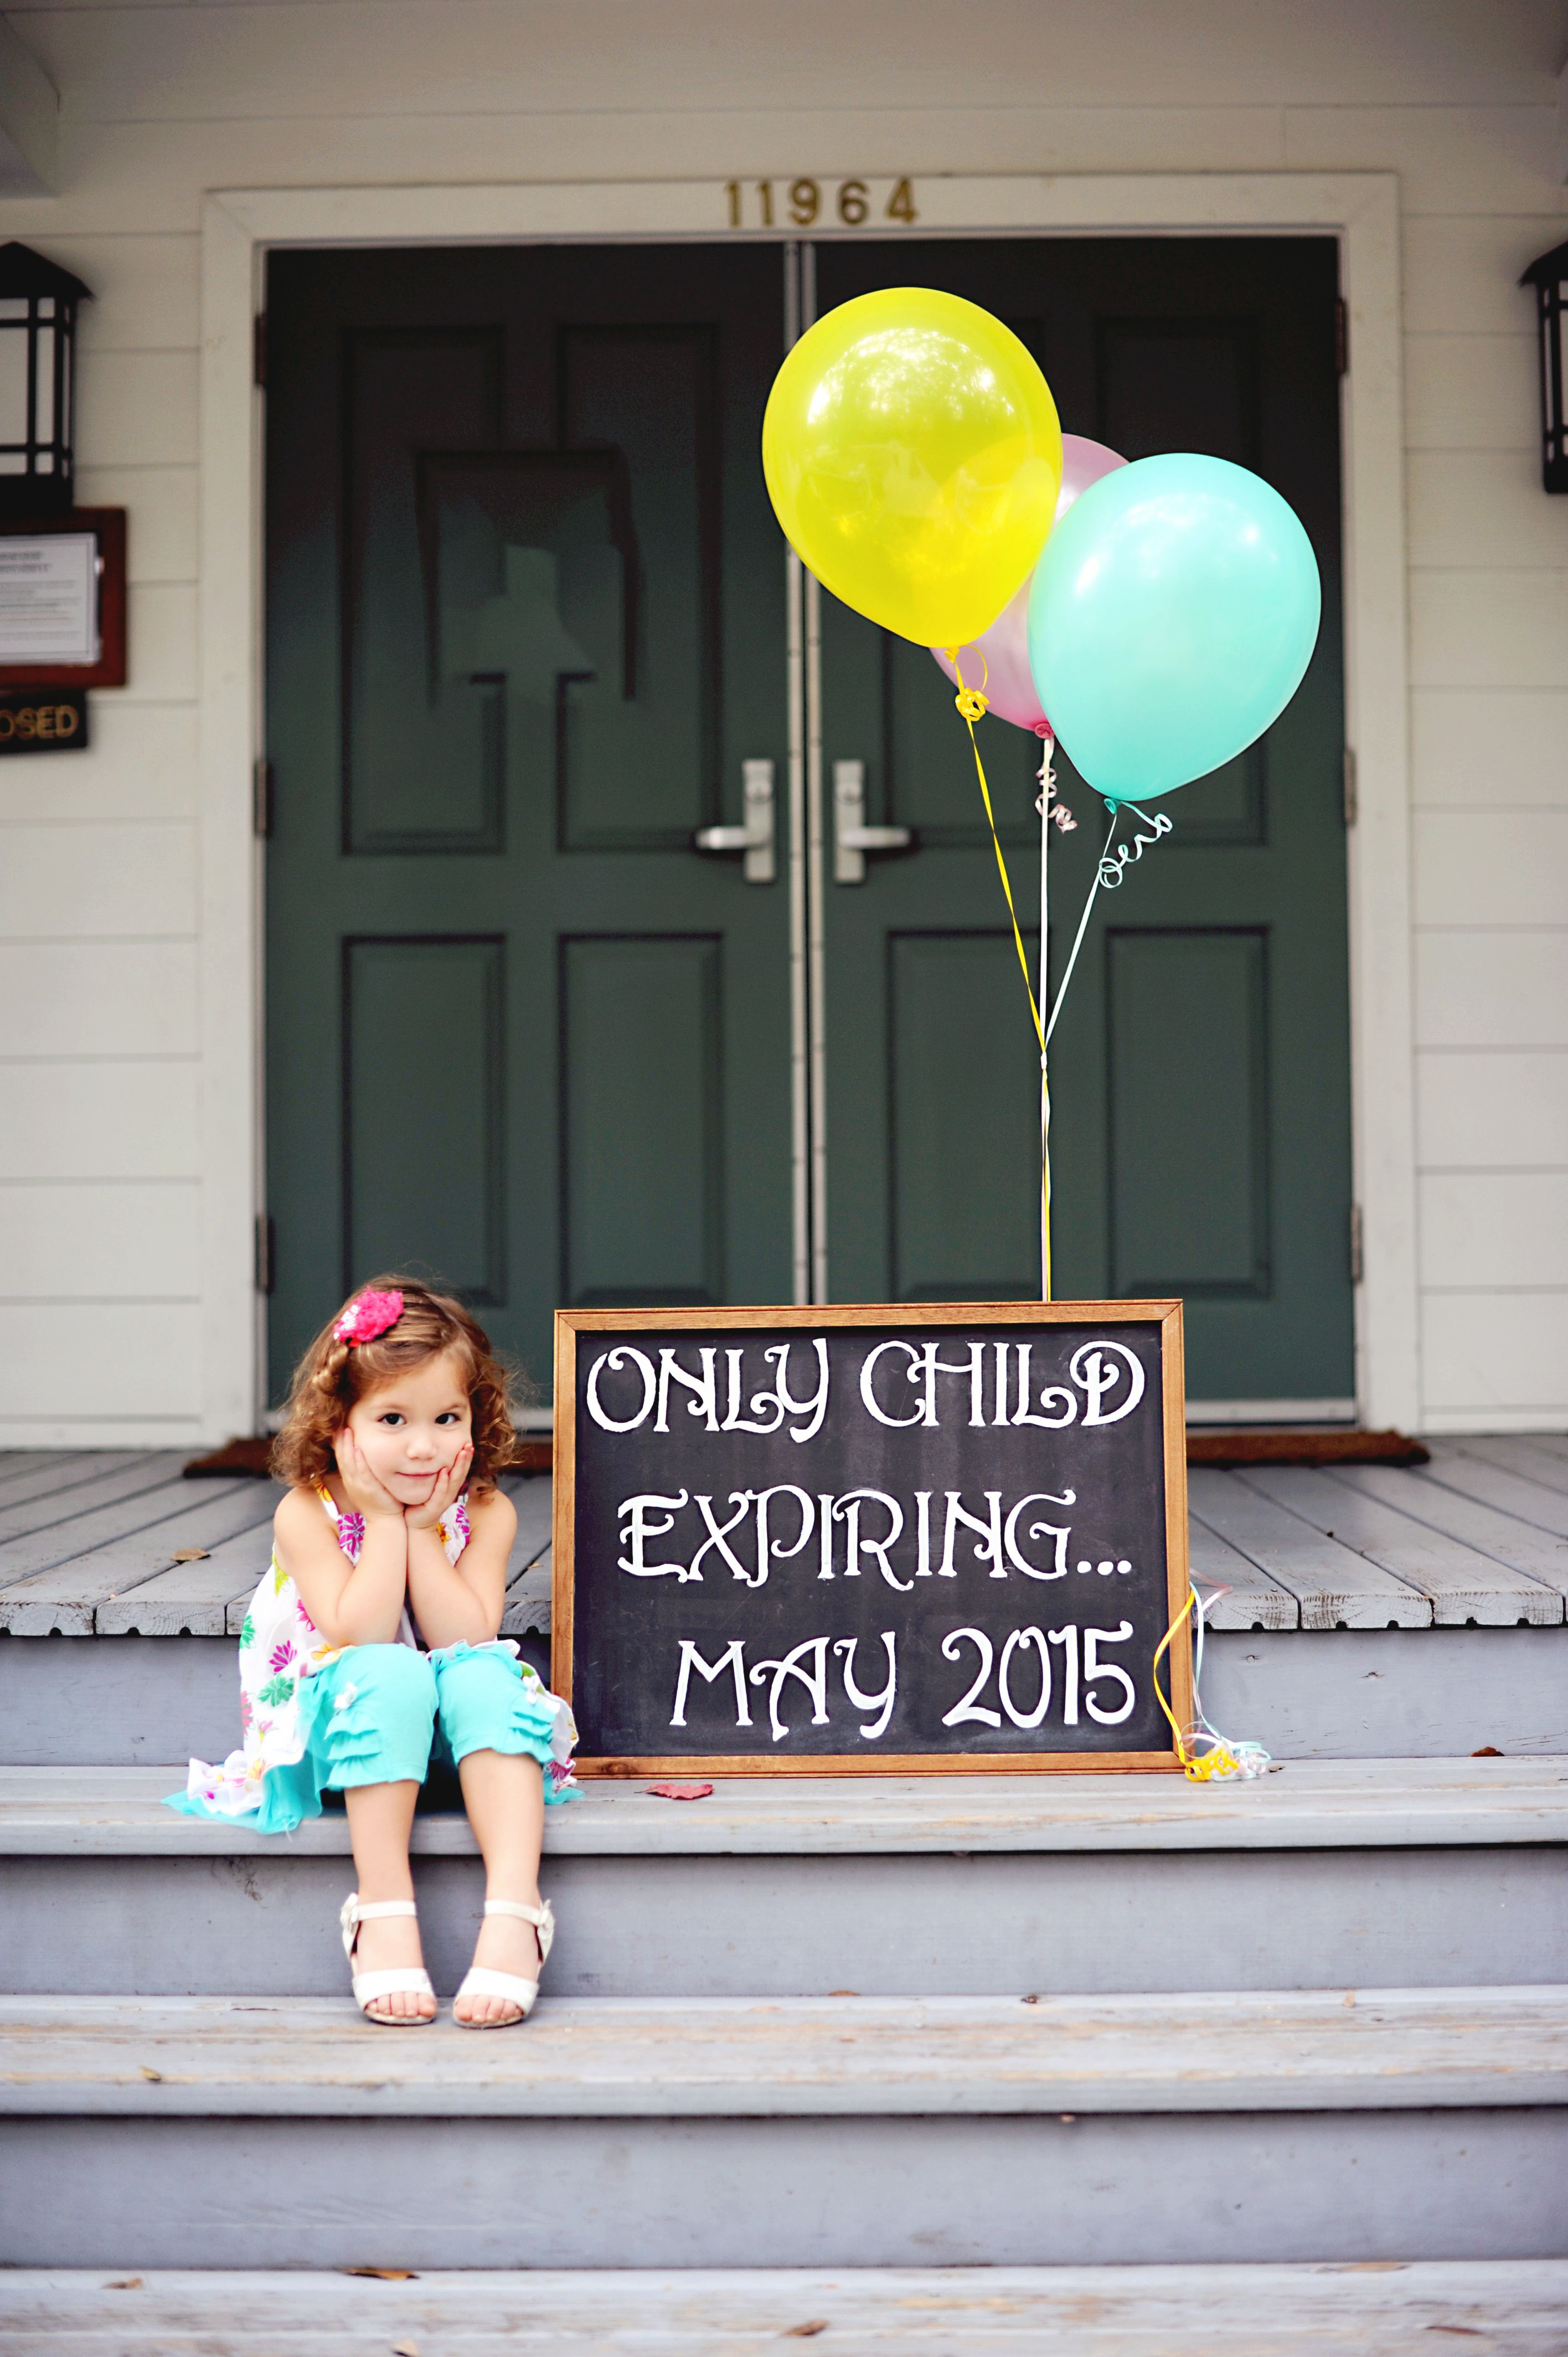 Only Child Expiring Dana Fontaine Photography – Second Baby Announcement Ideas